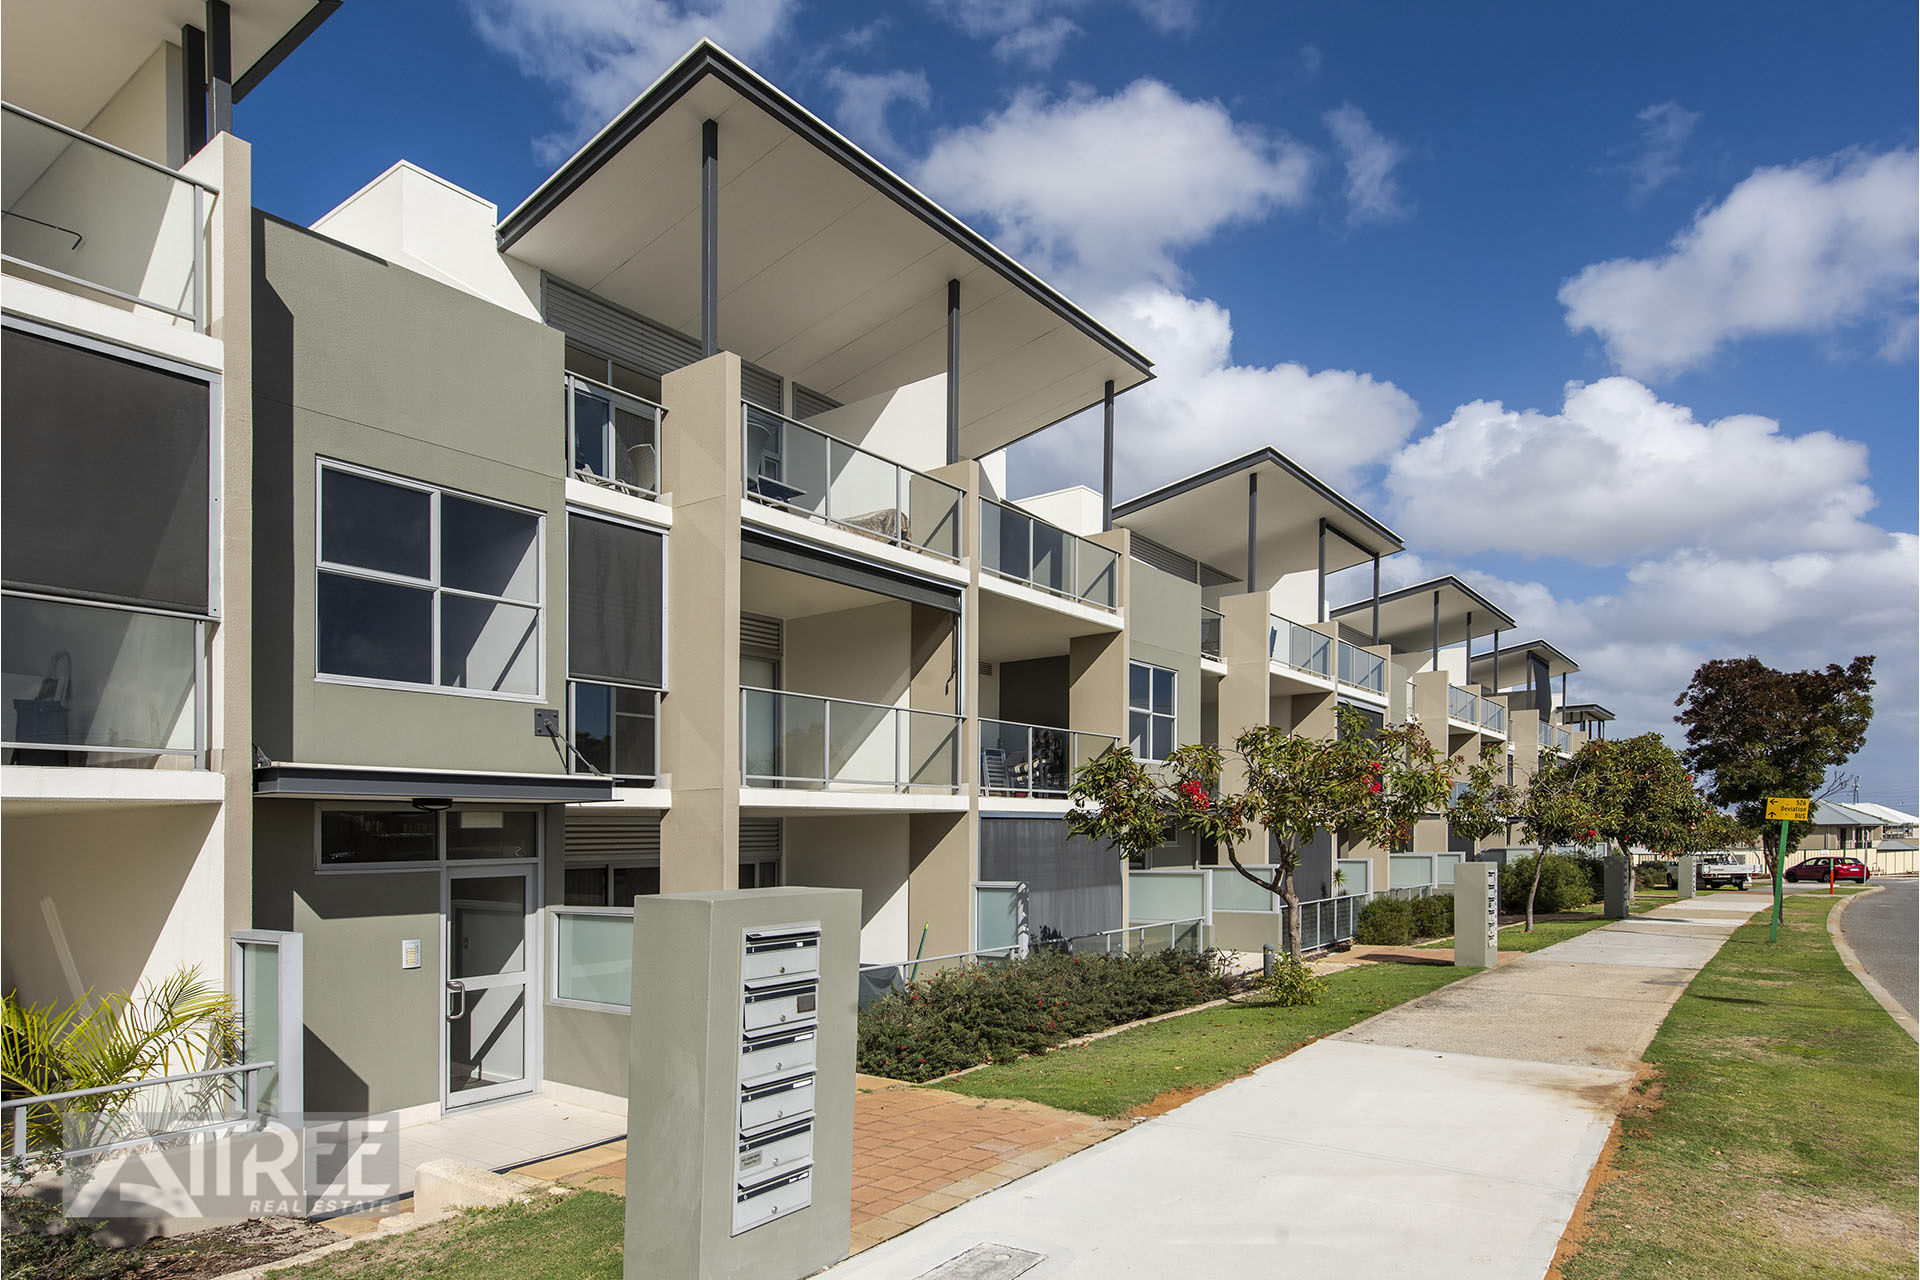 Property for sale in SUCCESS, 4/105 Wentworth Parade : Attree Real Estate